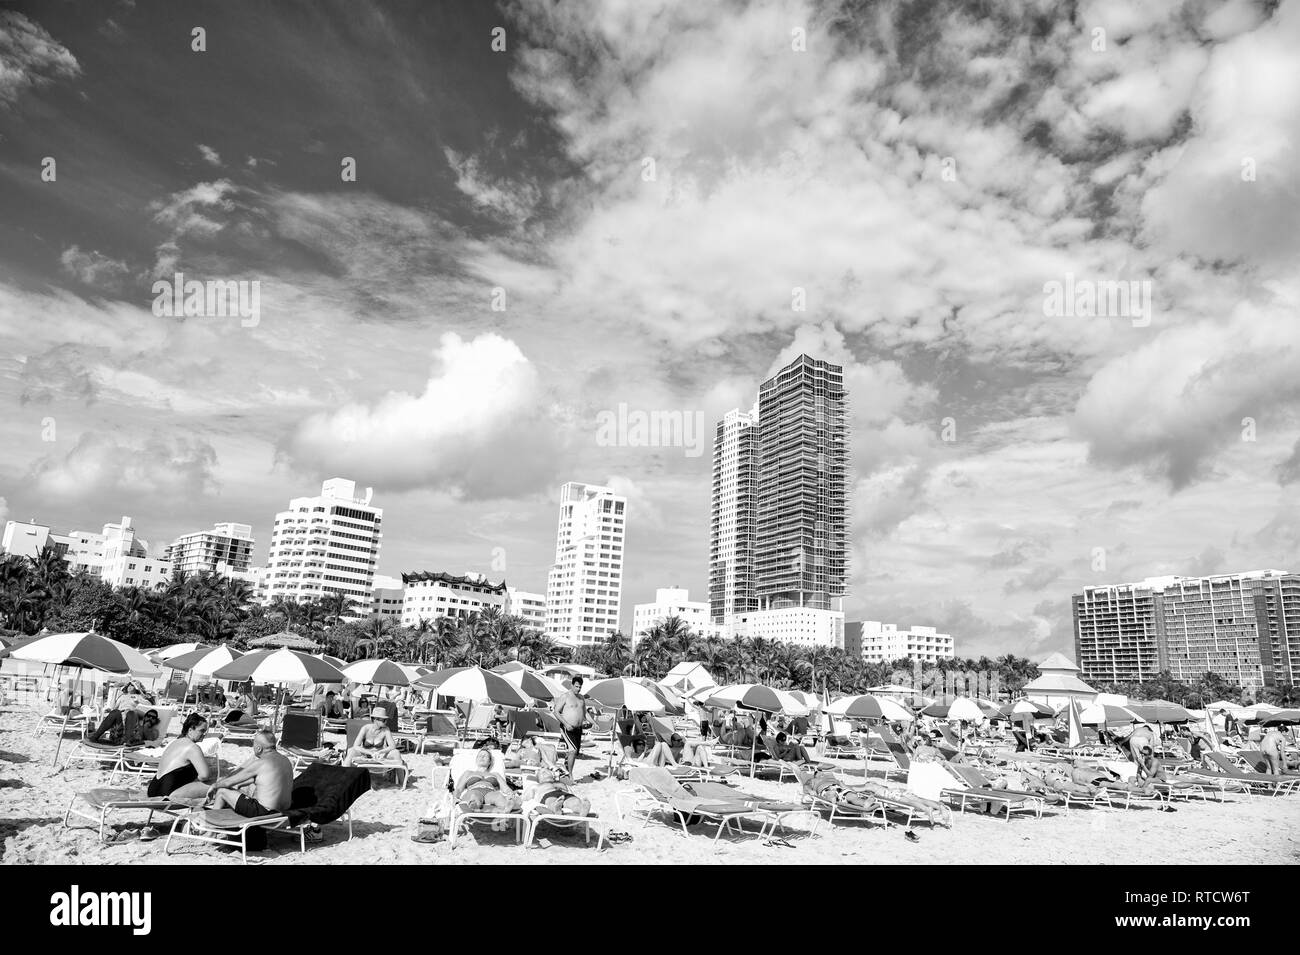 Miami, USA - January 10, 2016: Miami beach or south beach. people sunbathing on deck chairs under blue umbrellas on beach with high buildings on cloudy blue sky. Summer vacation. Lounge and leisure - Stock Image